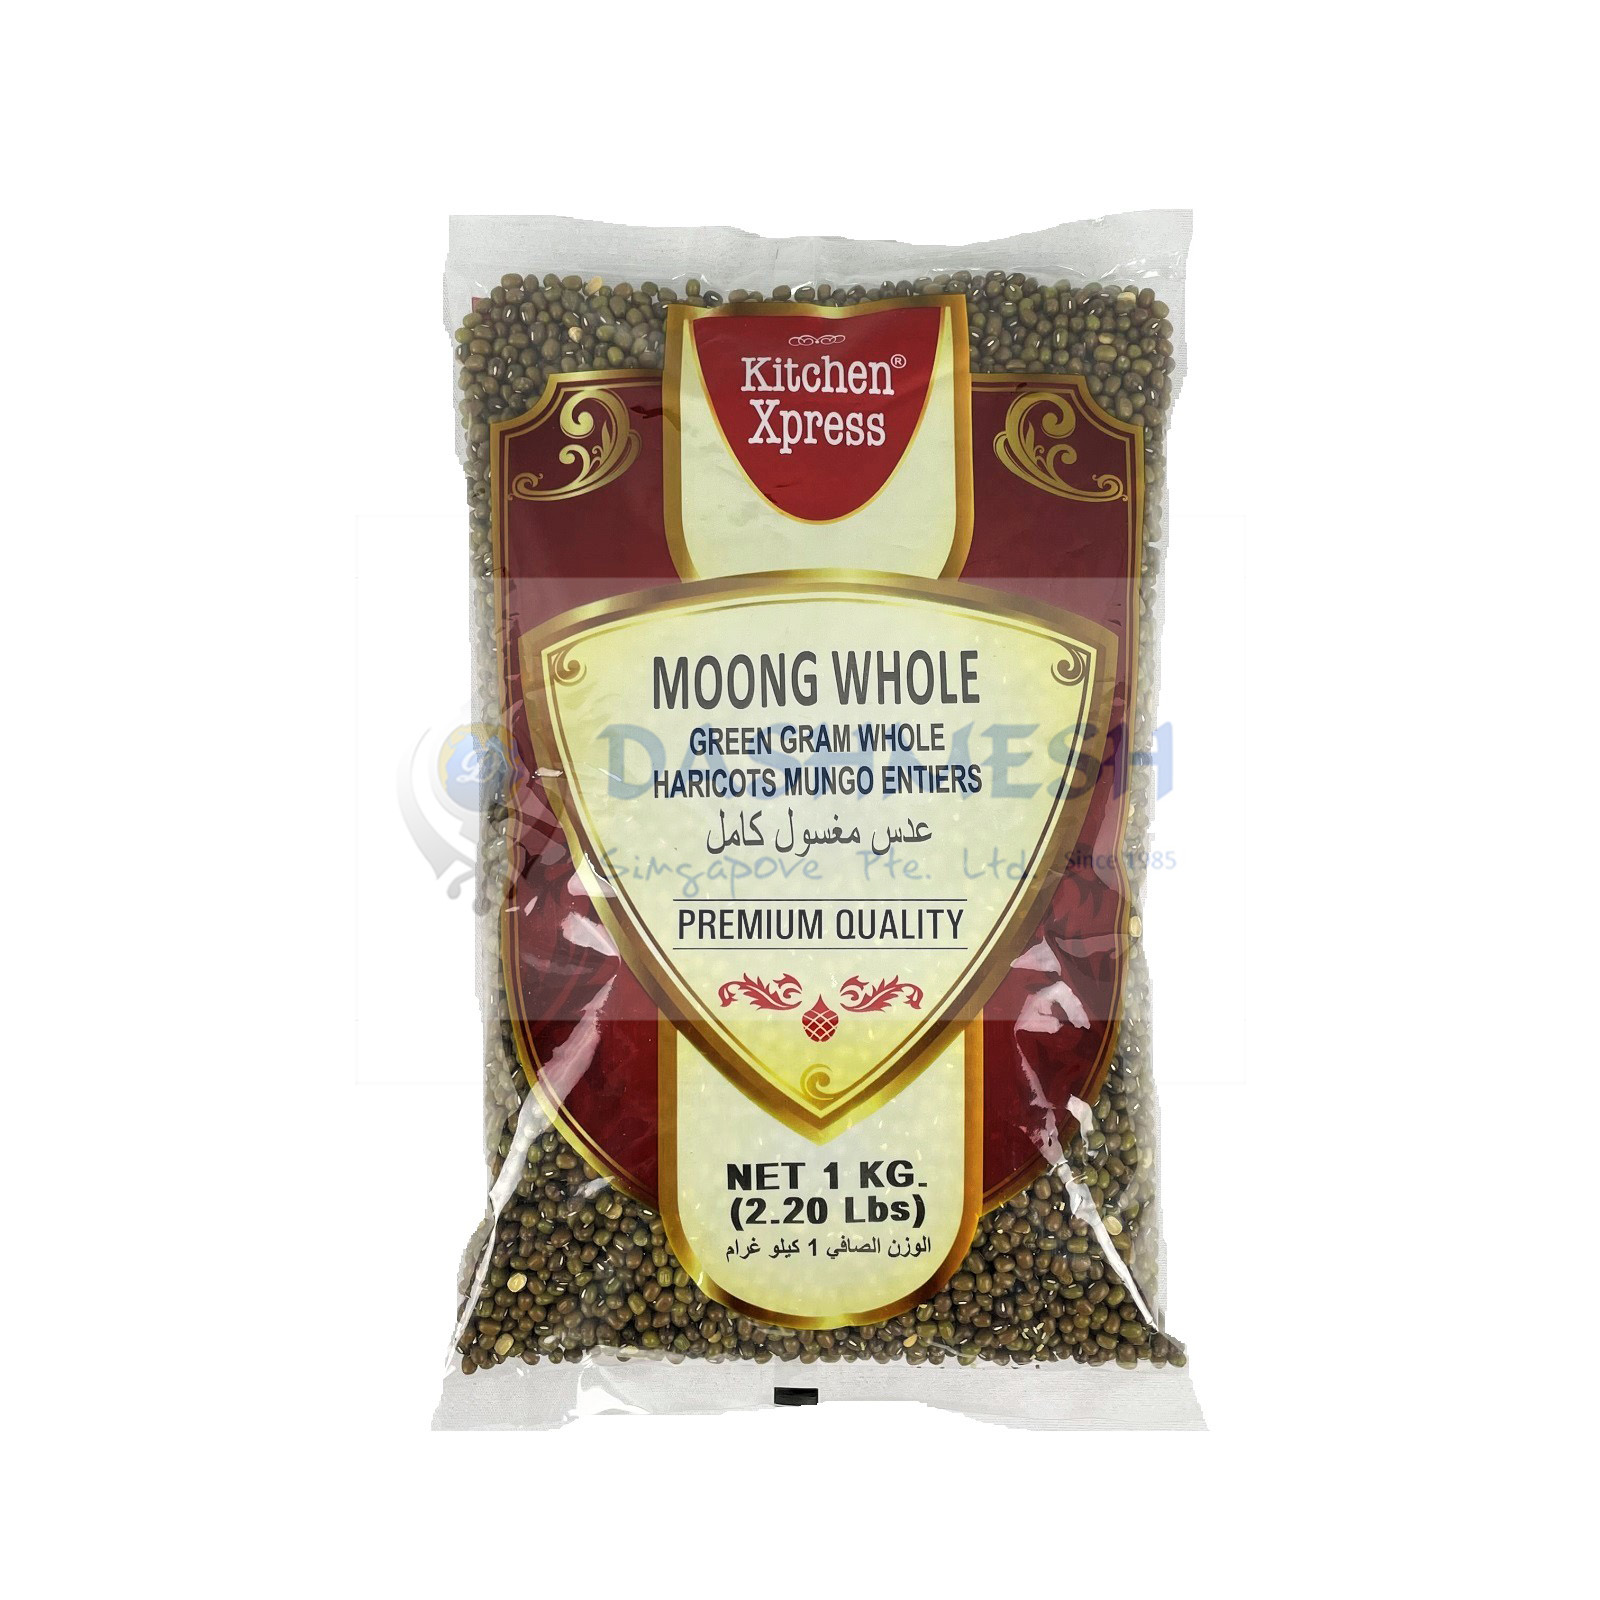 Kitchen Xpress Moong Whole 500g, 1Kg & 5Kg